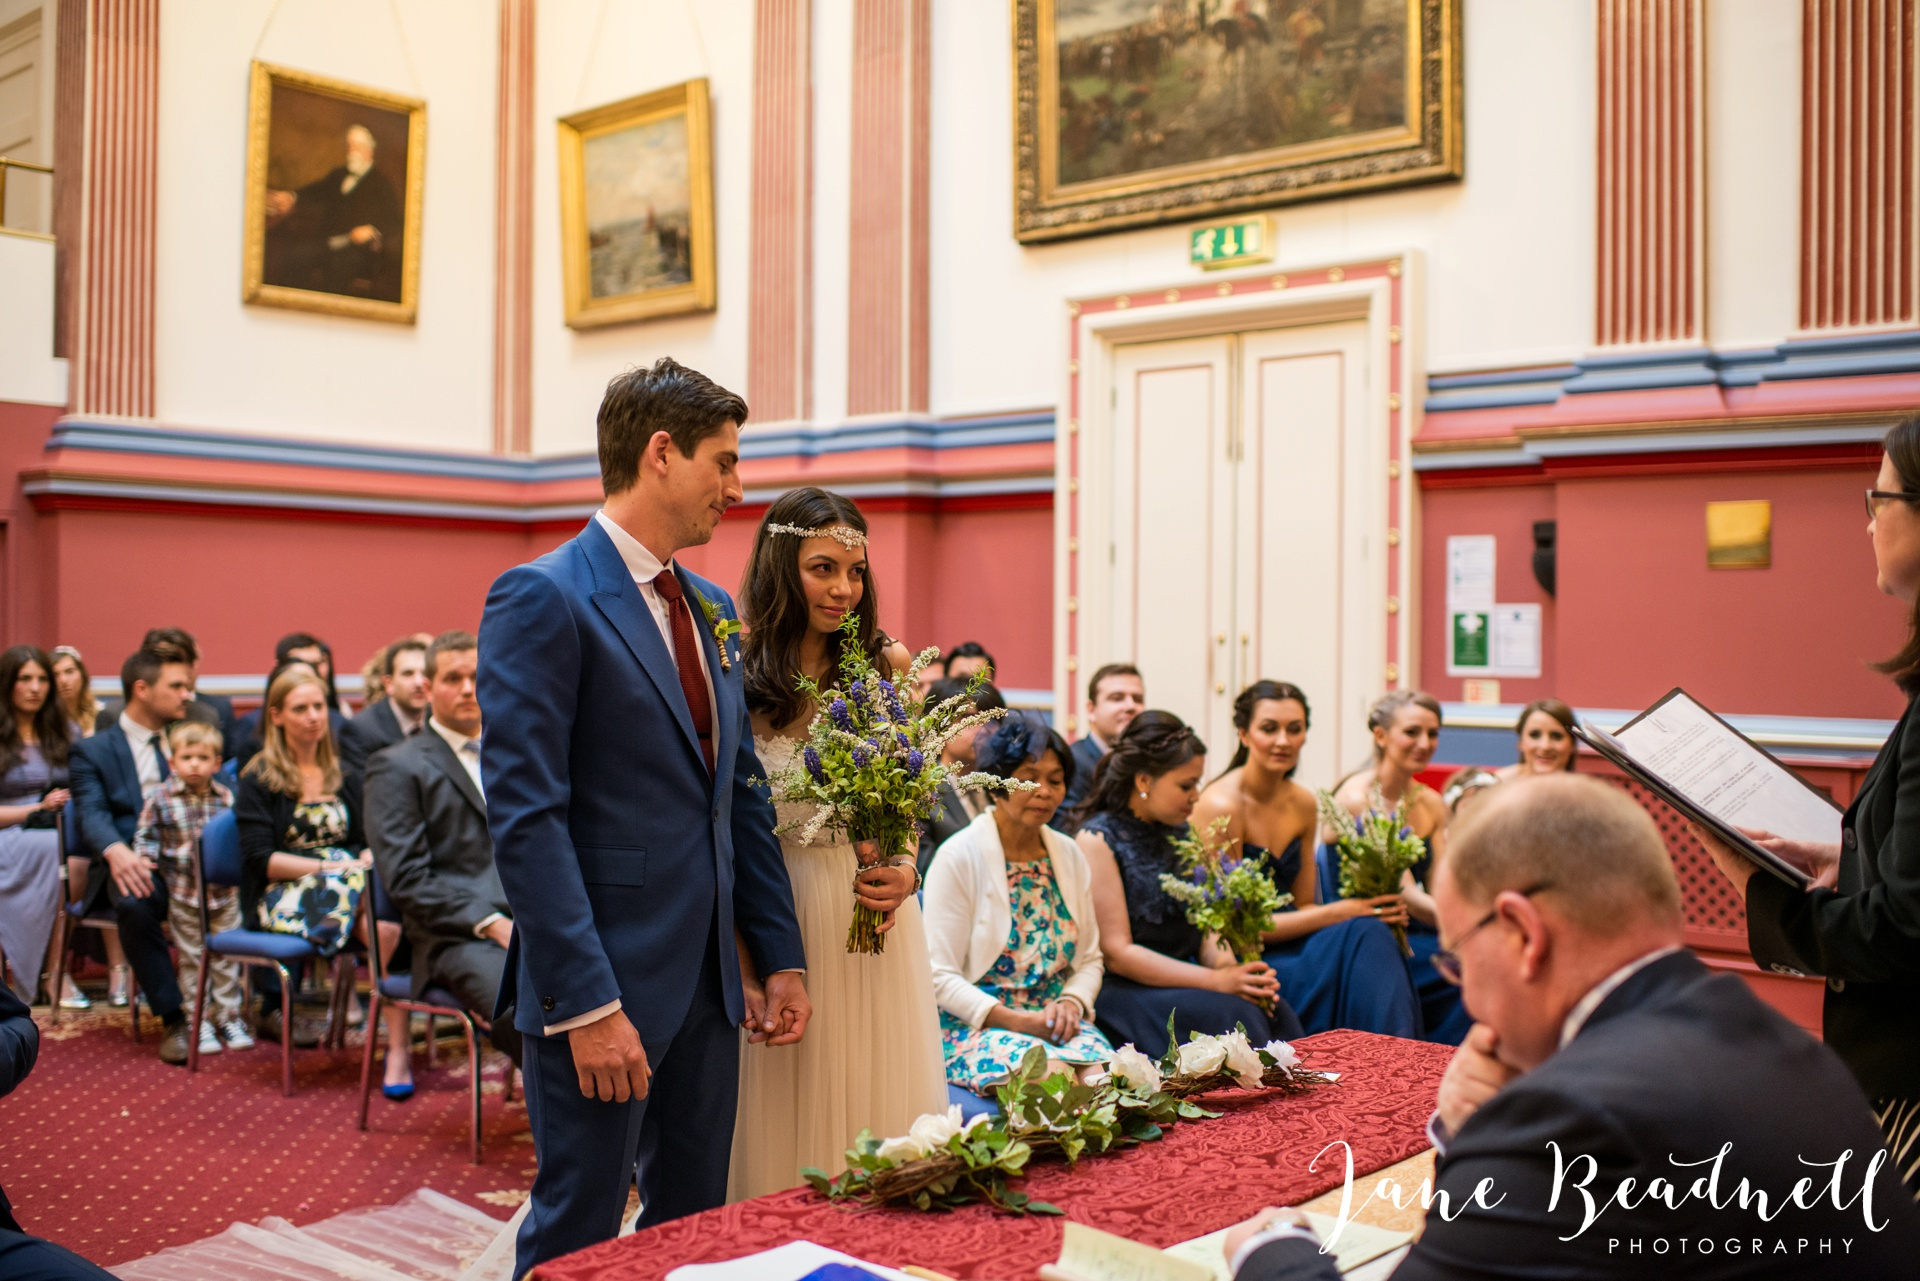 Left Bank Centre Leeds wedding photography by Jane Beadnell photography Yorkshire_0034